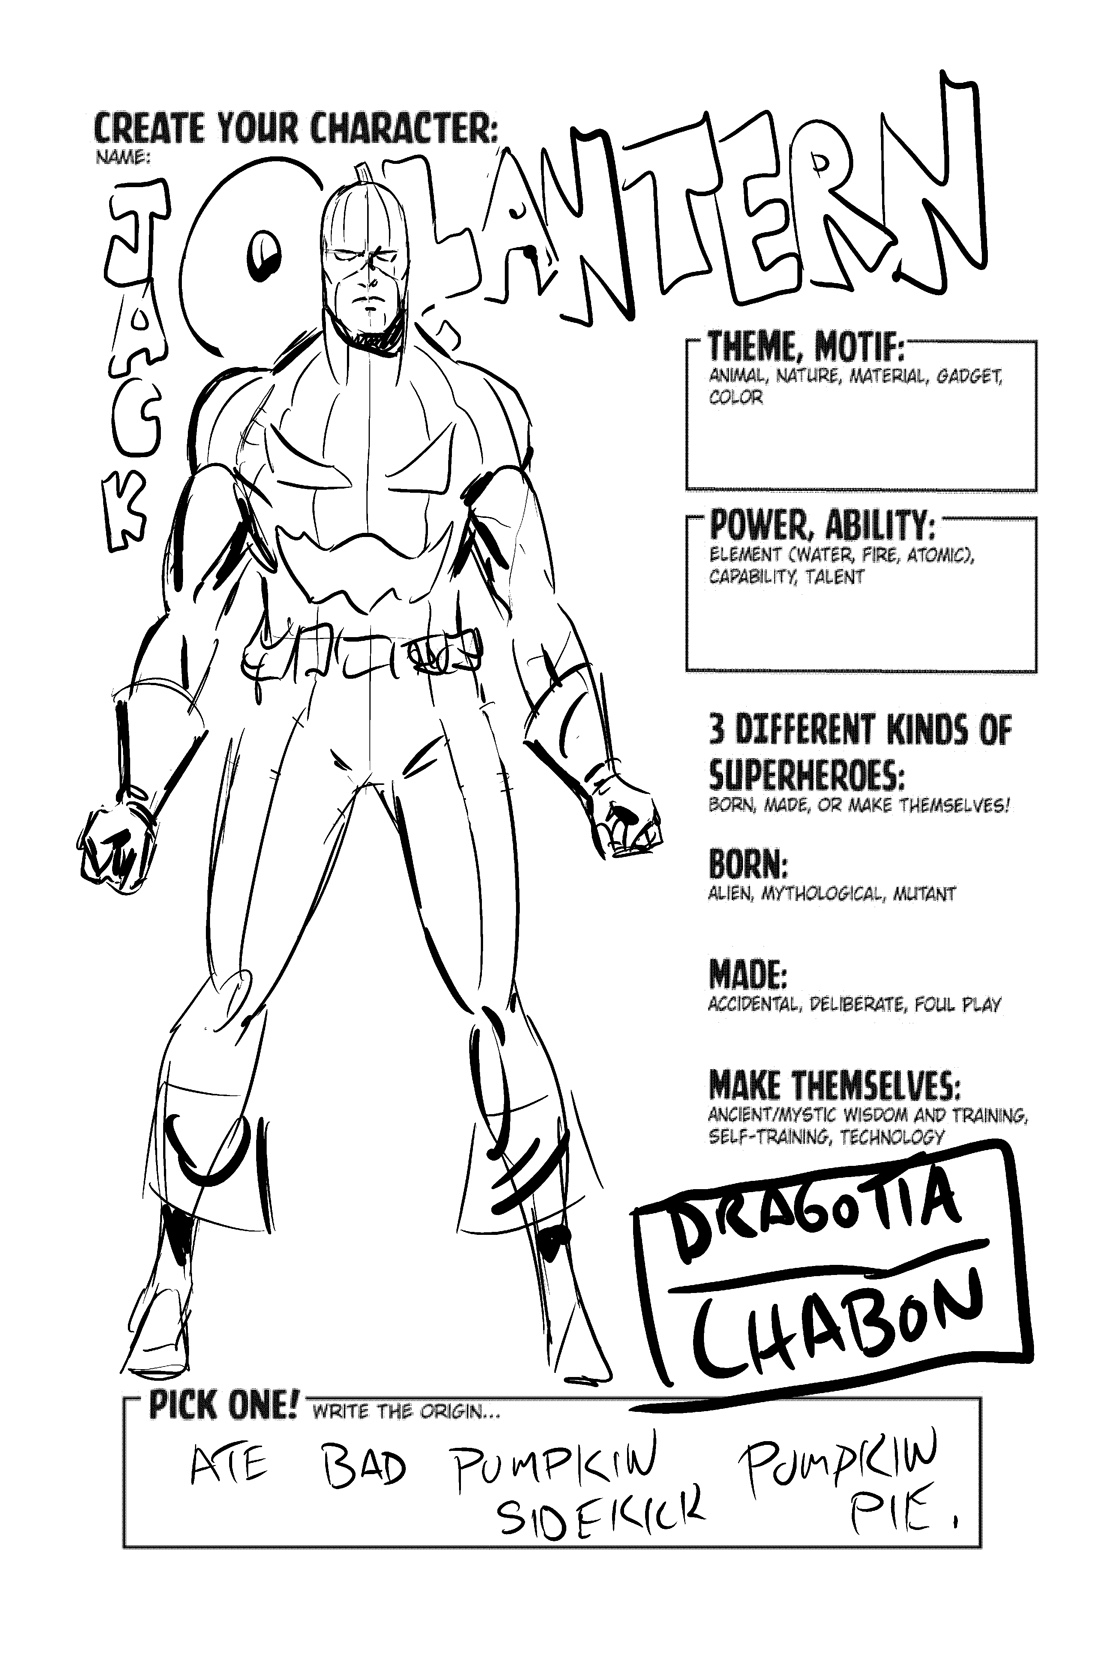 15 Best Images Of Design Your Own Superhero Worksheet